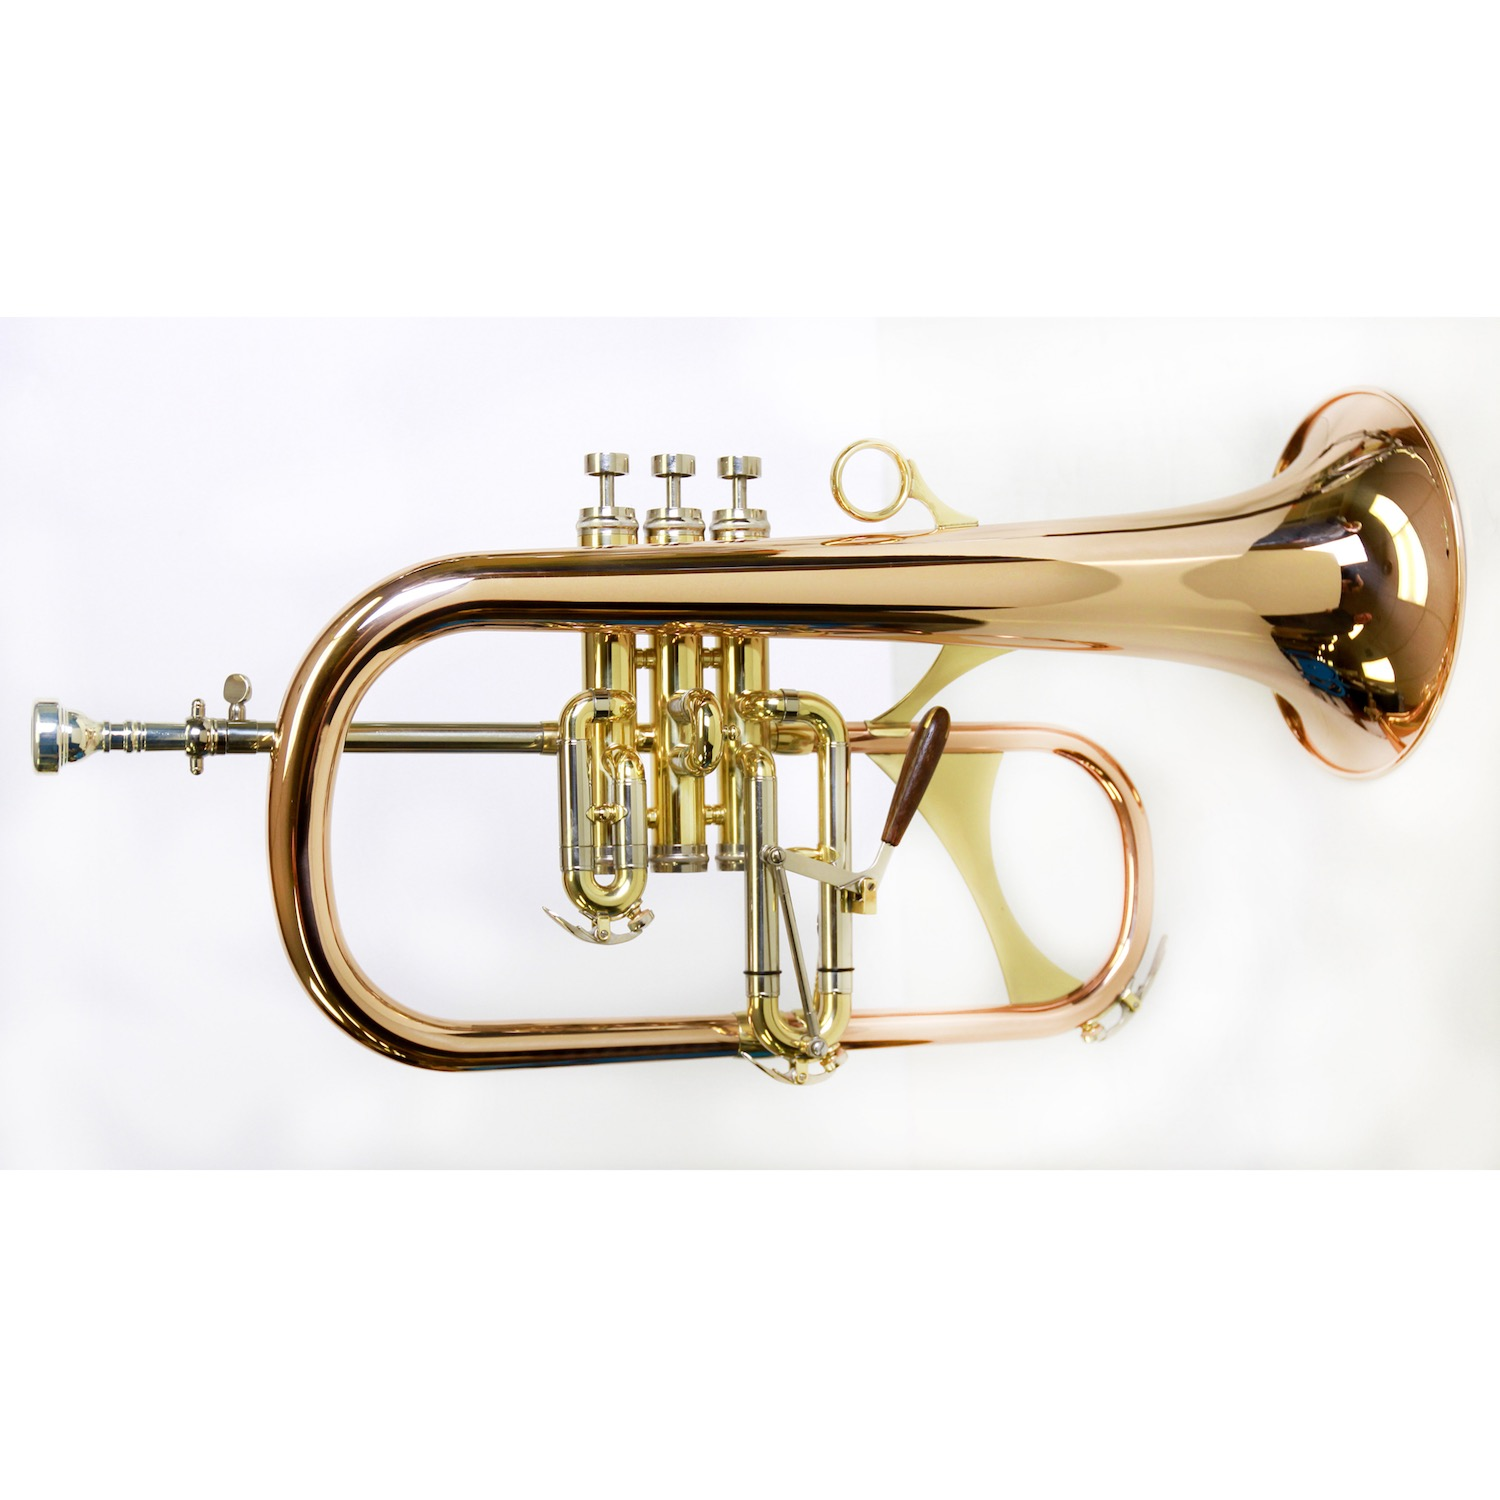 Phaeton Professional Flugelhorn - Multiple Finishes Available!